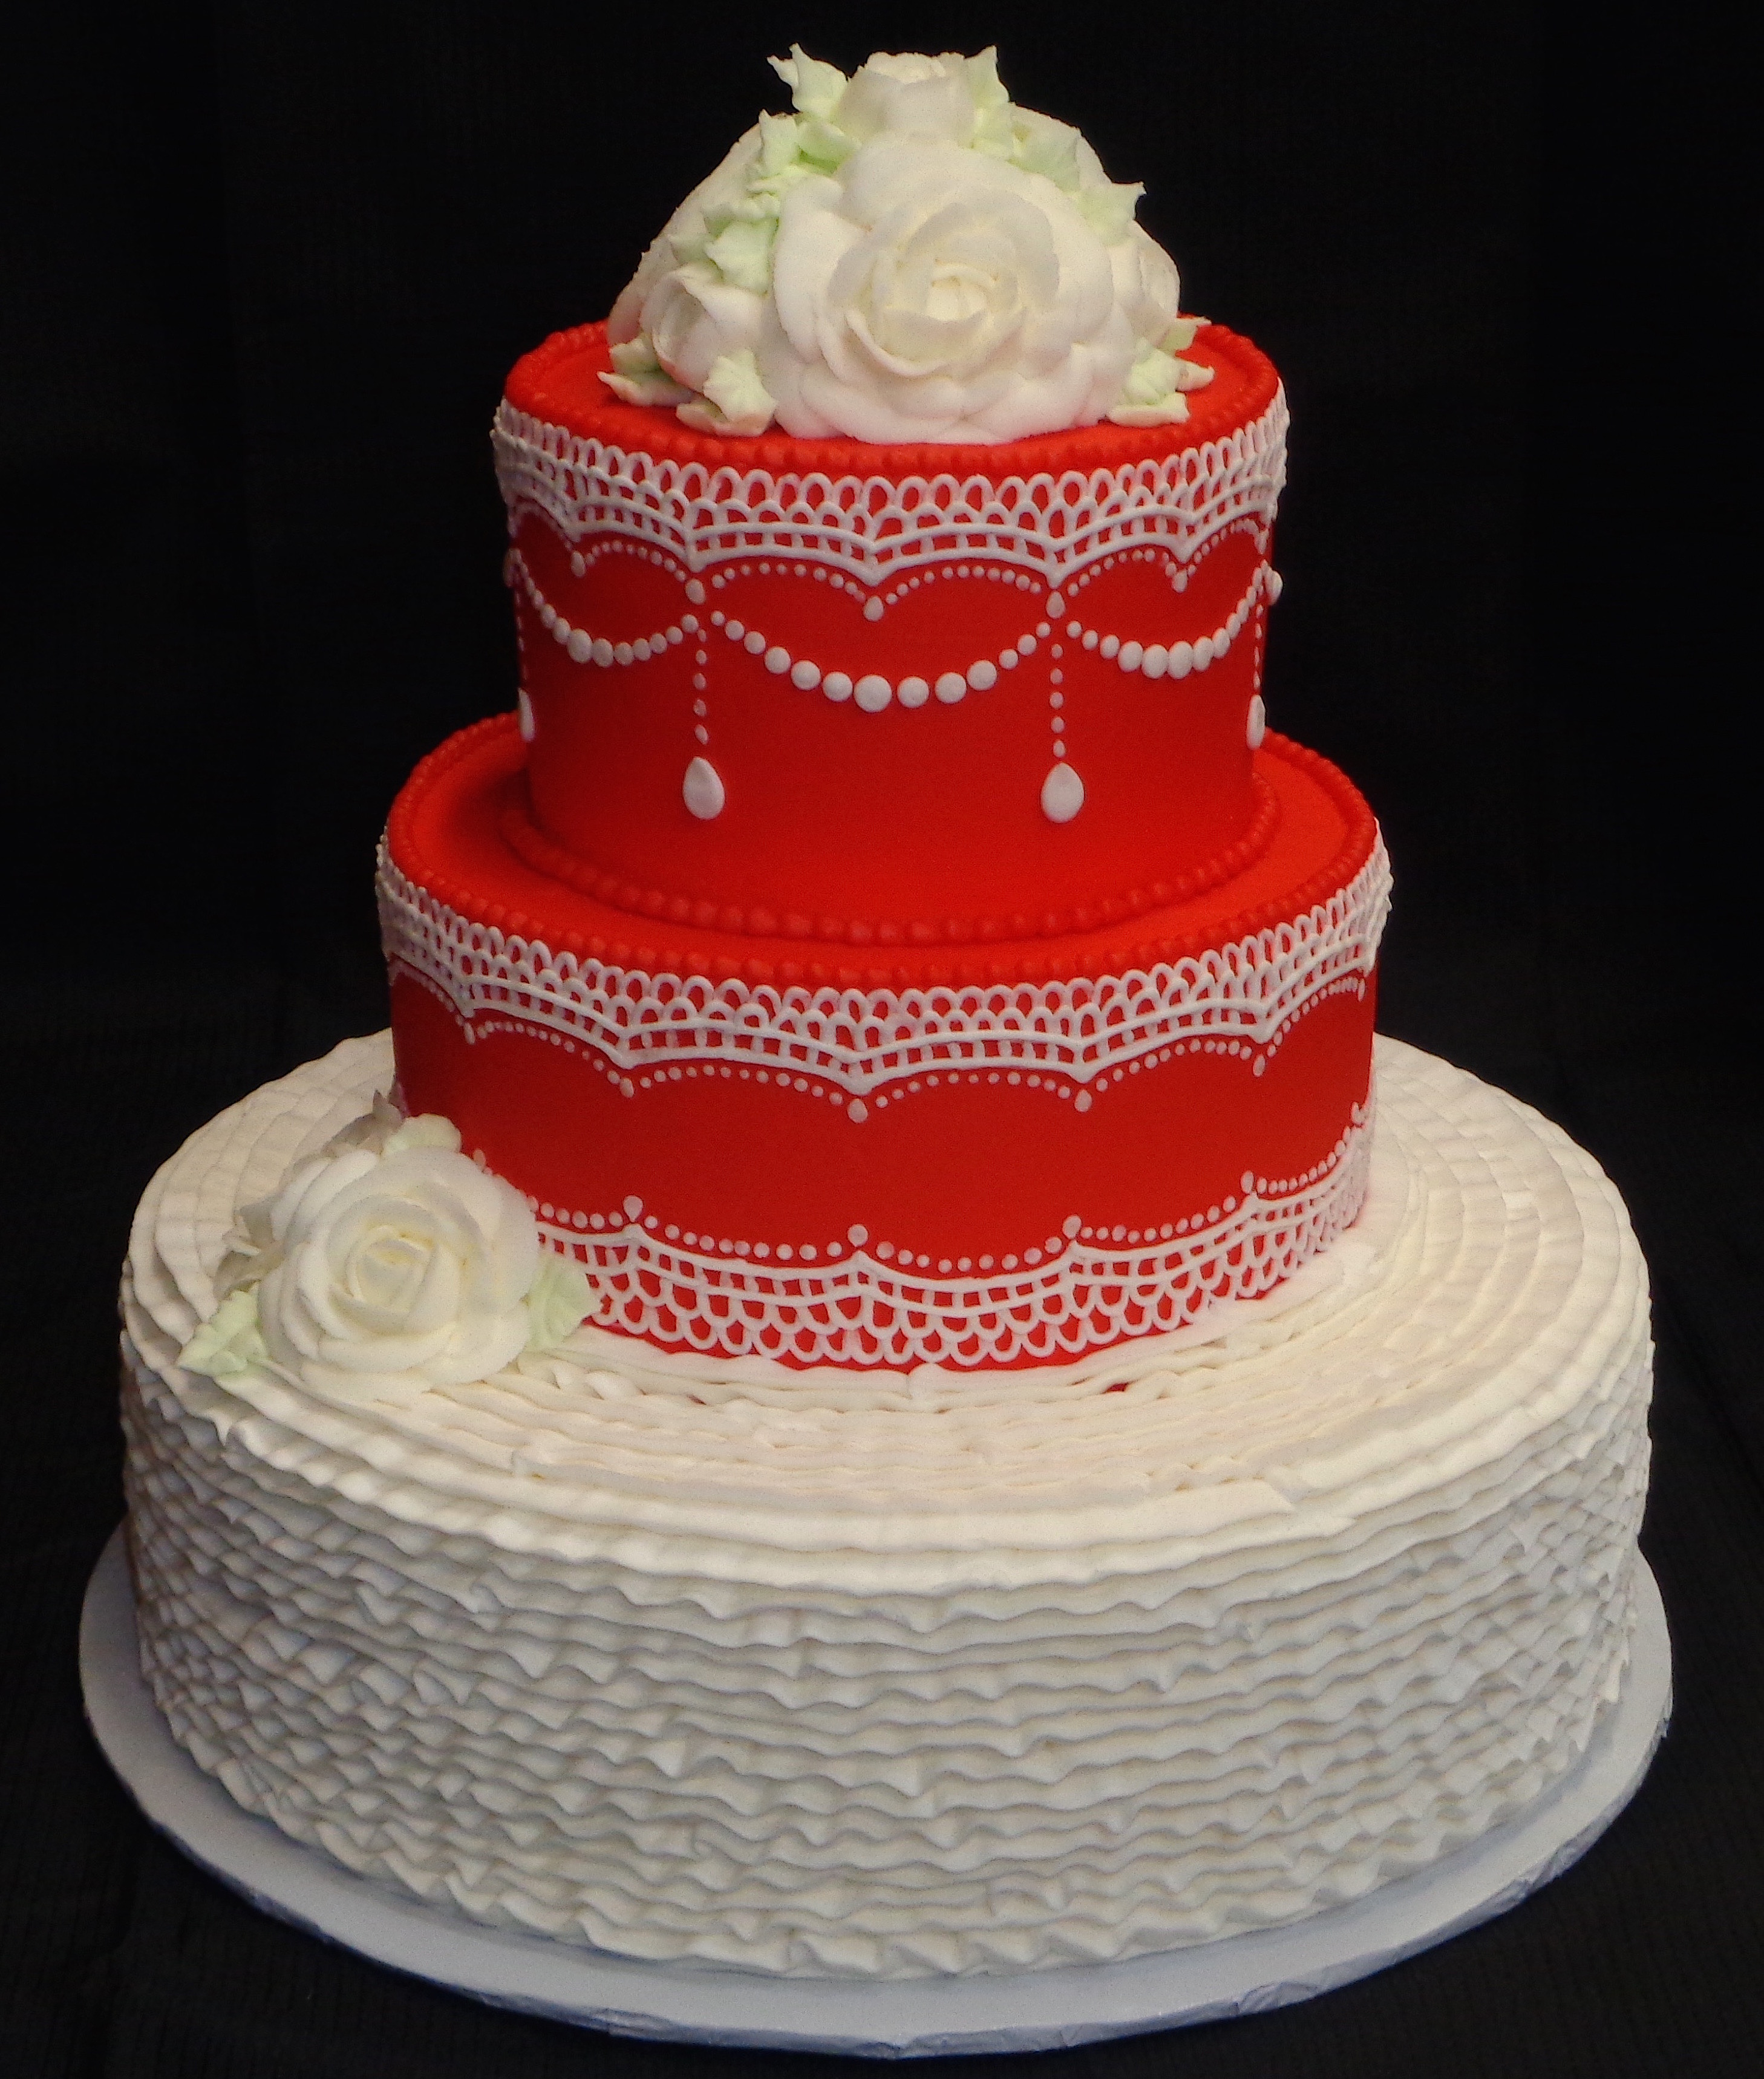 Red Cake w/ White Lace